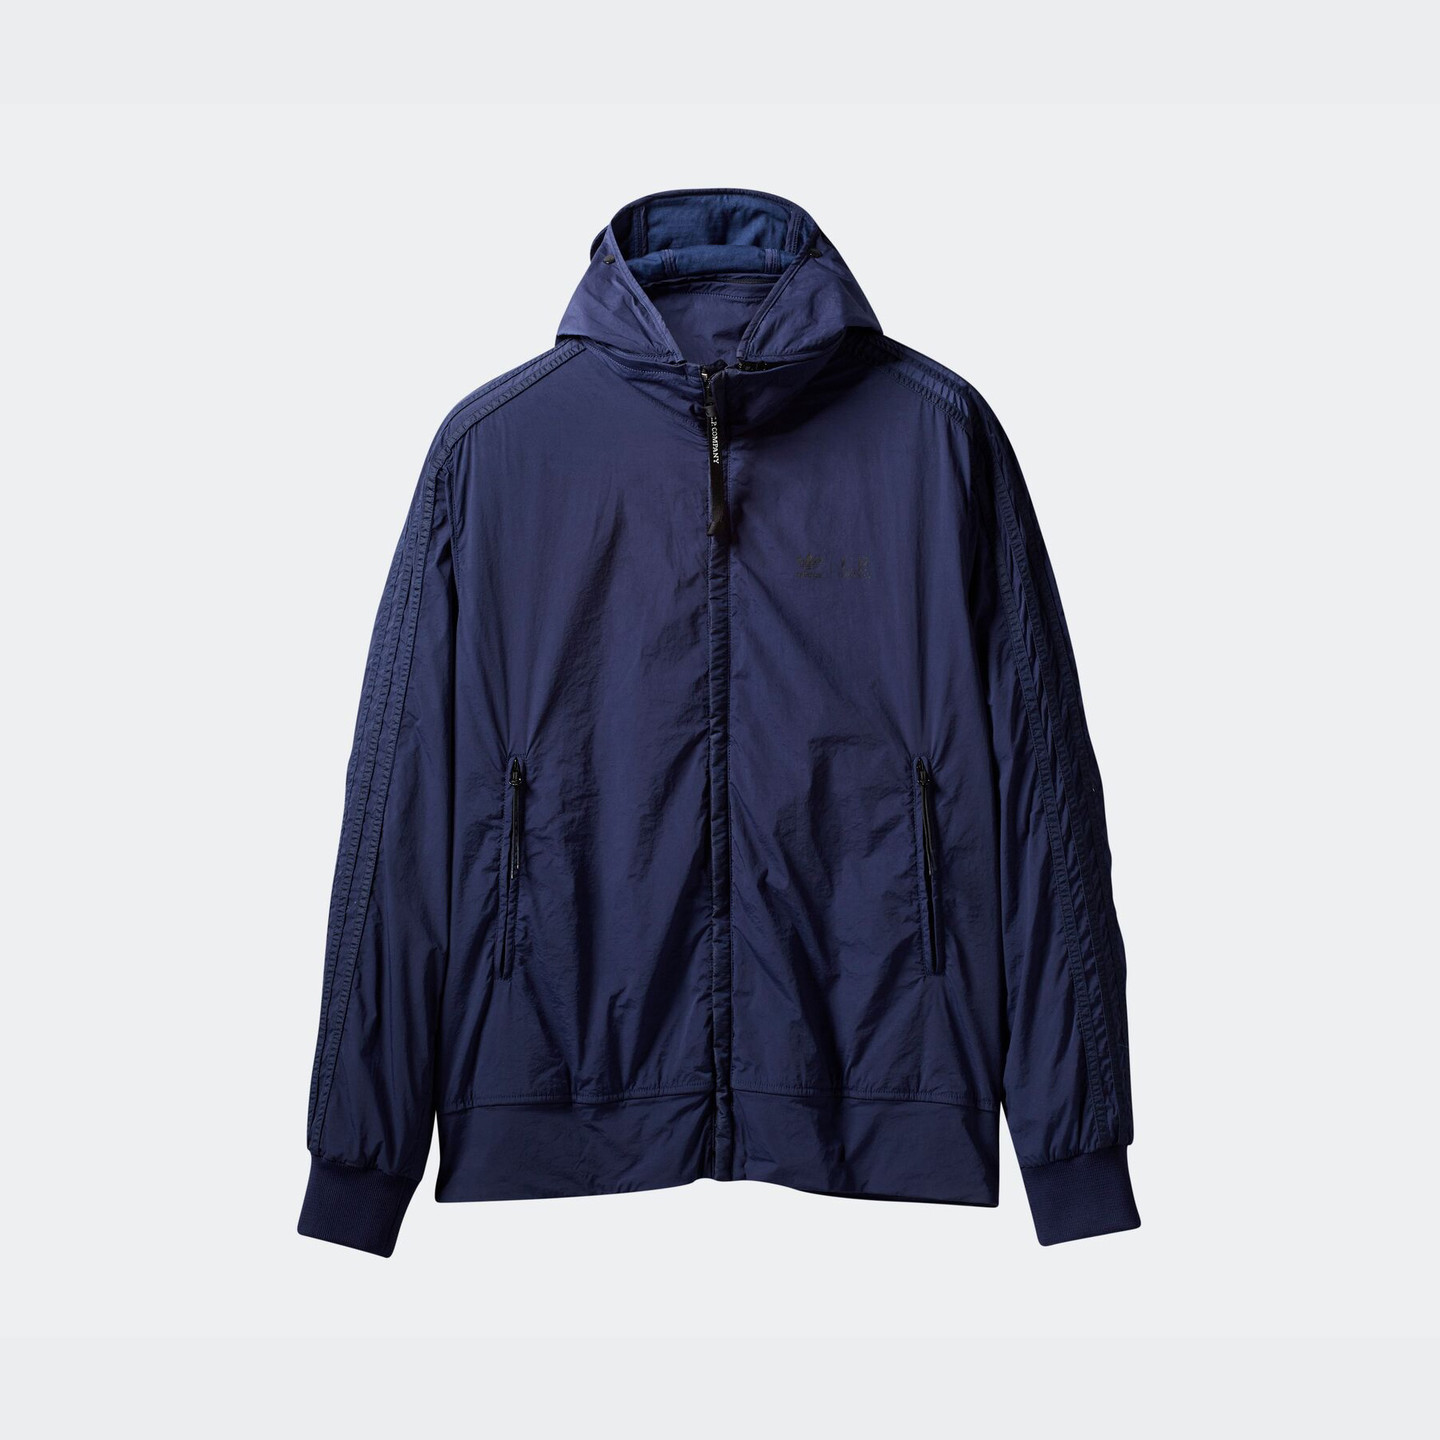 Adidas C.P. Company Originals Jacket Night Indigo CK6284